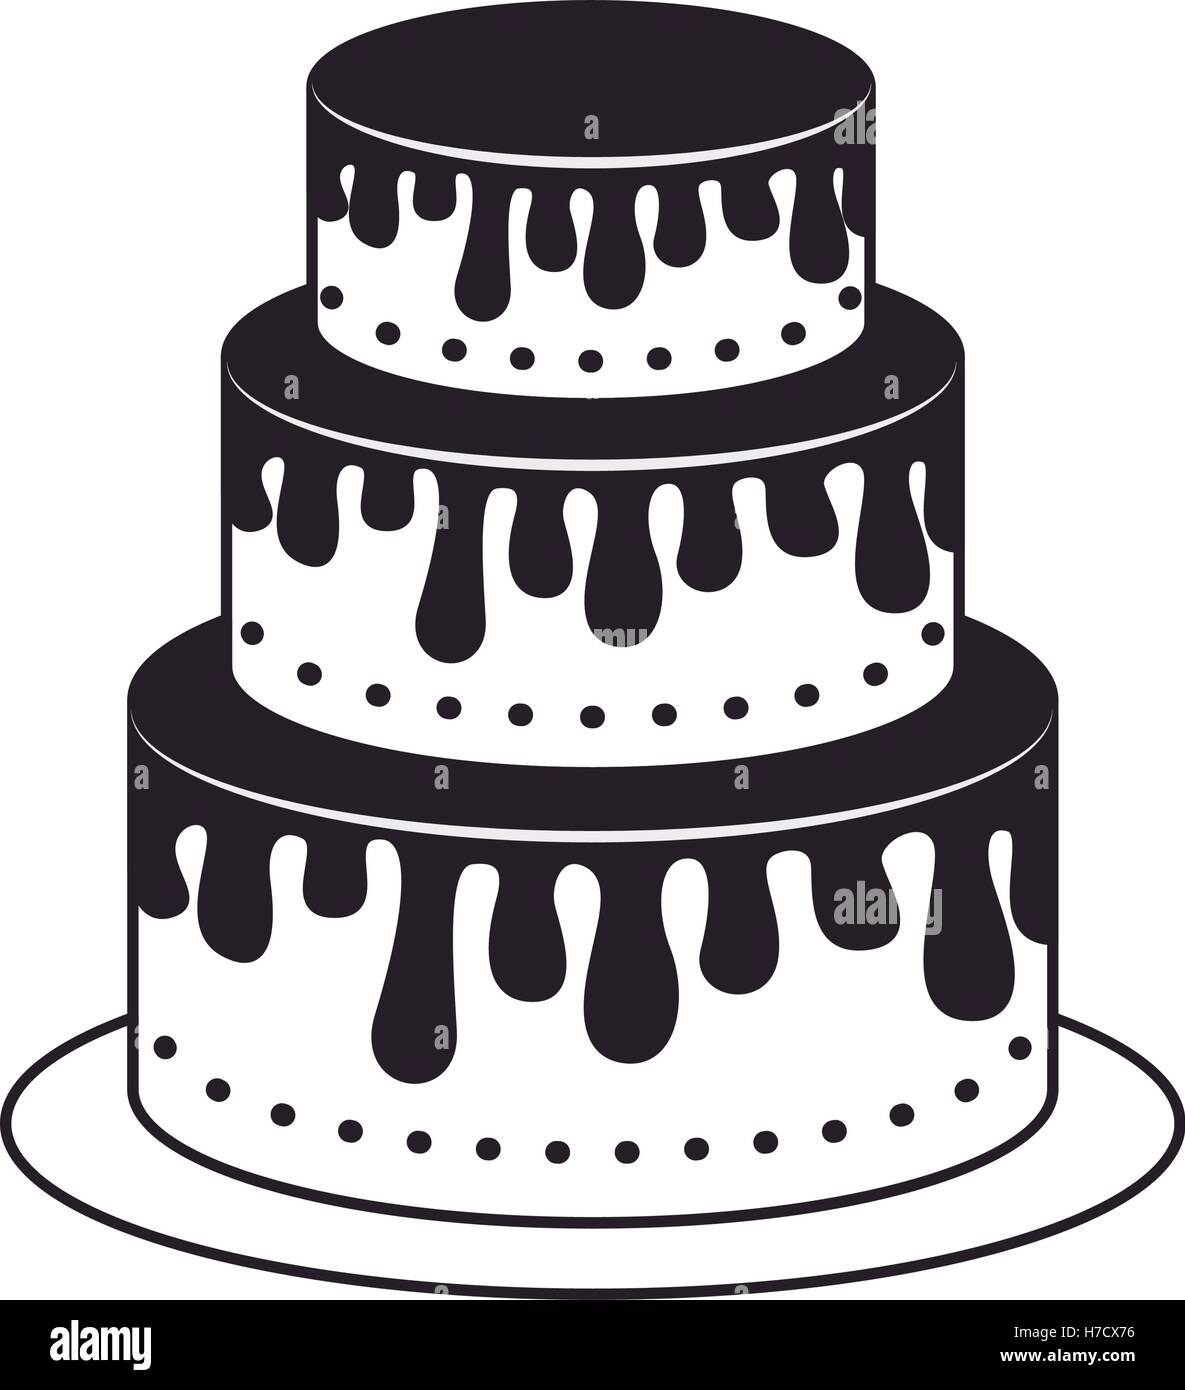 Cake White Background